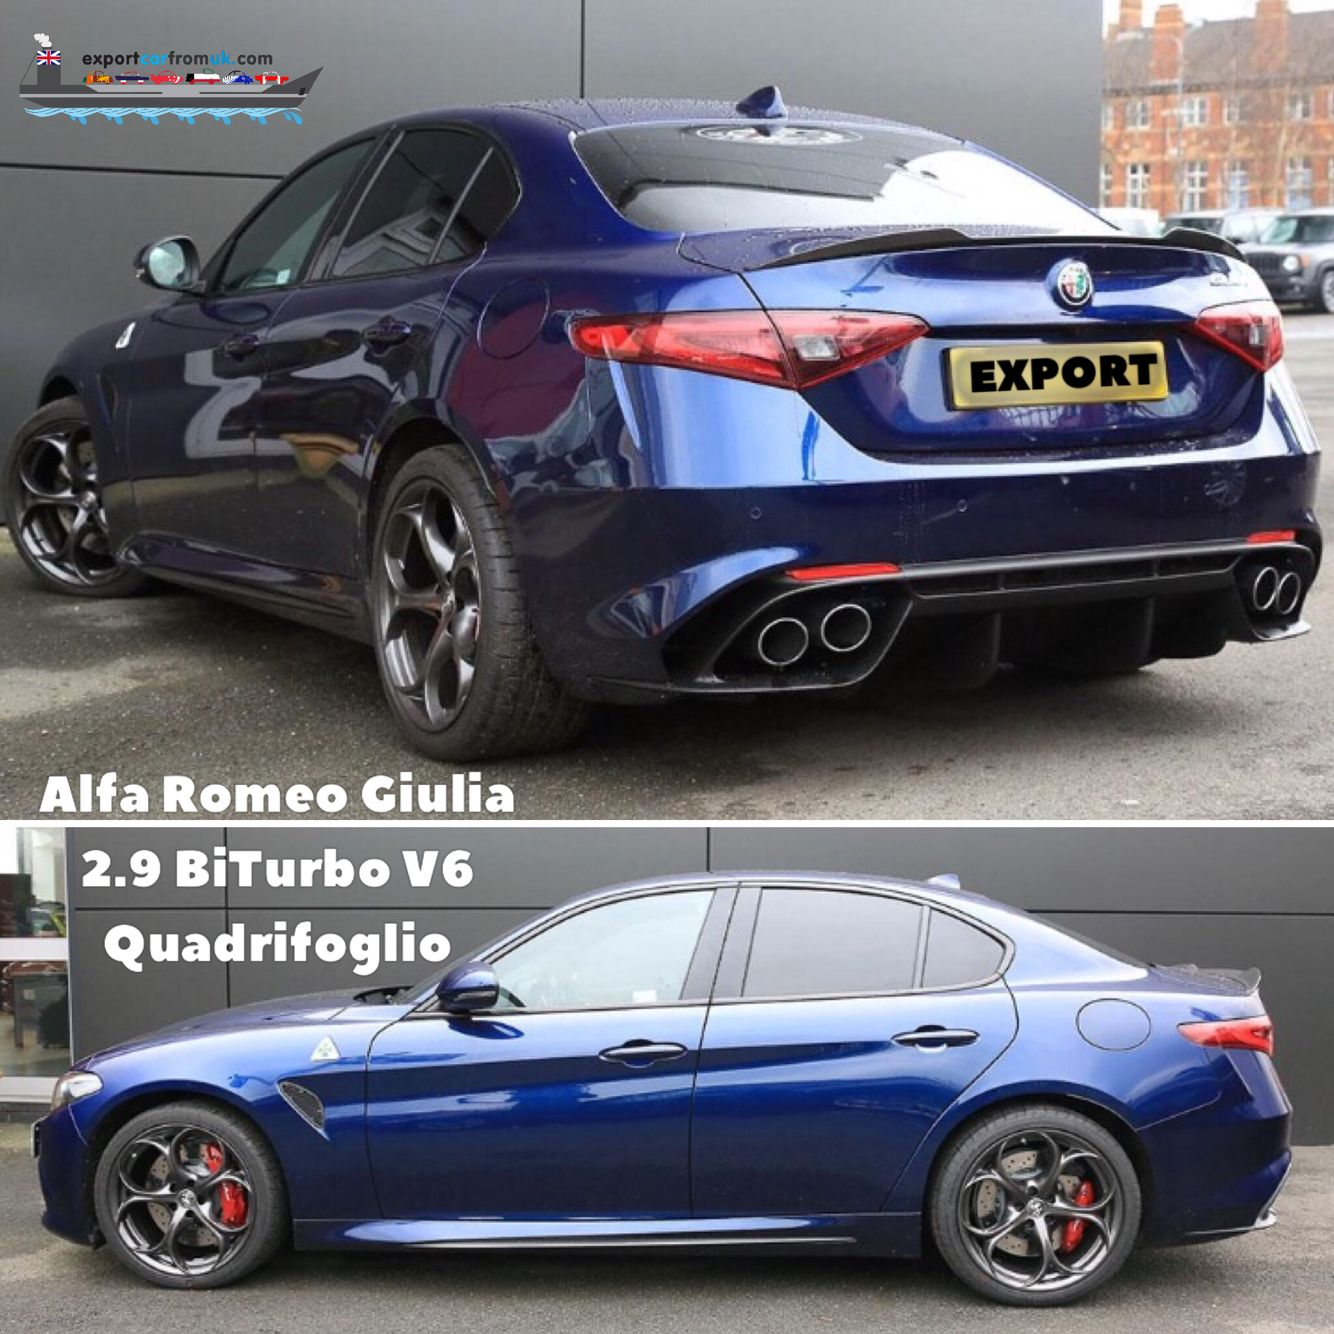 new alfaromeogiulia is availble for export now. Contact